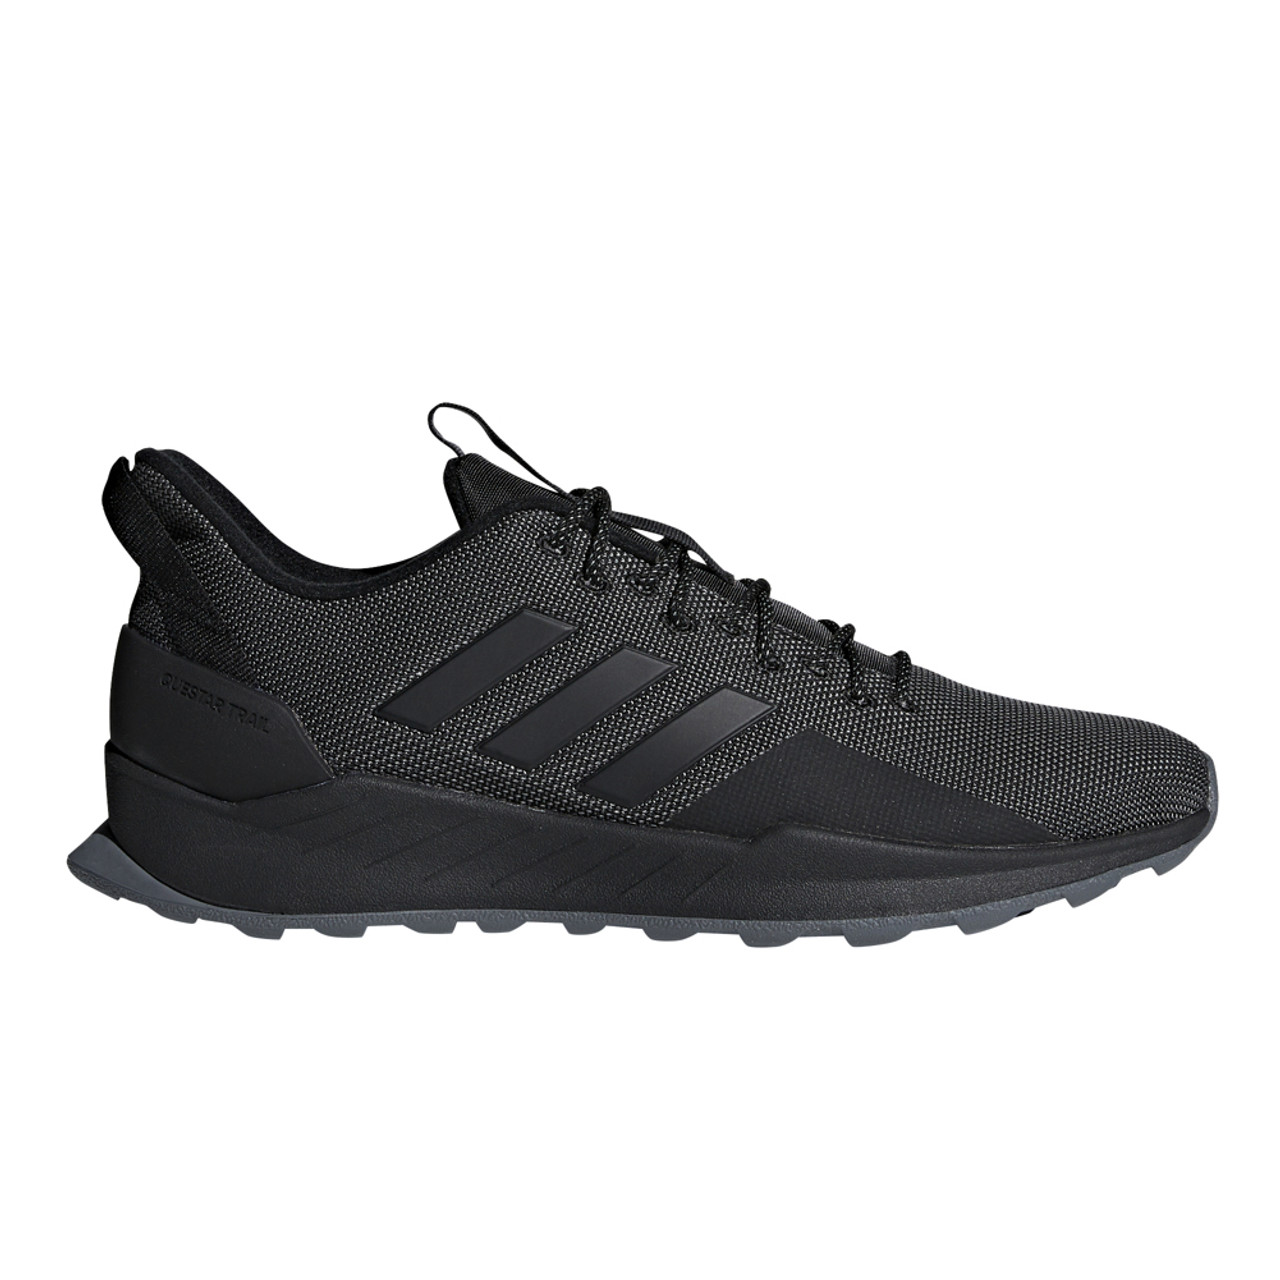 2d8f2112b6a Adidas Men s Questar Trail Running Shoe Black Grey - Shop now   Shoolu.com